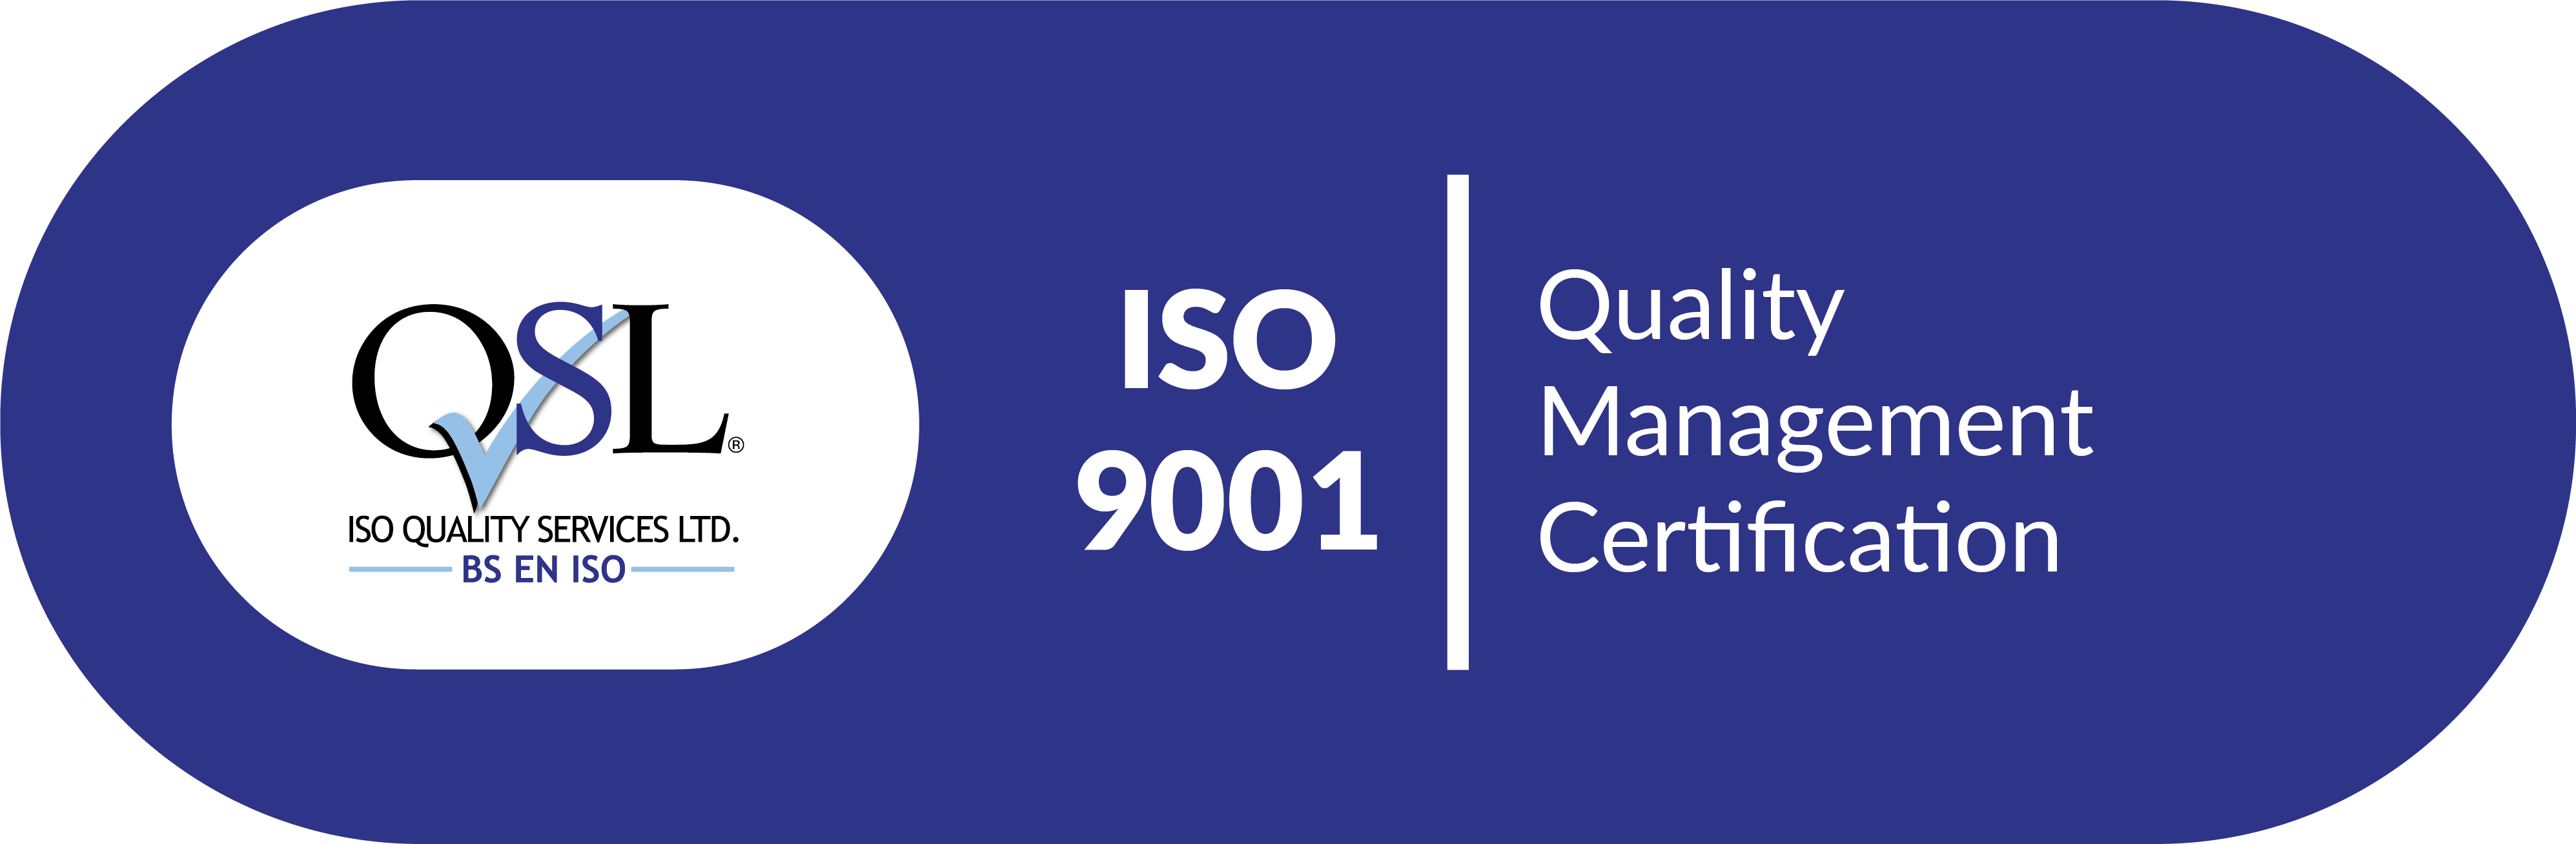 QSL Quality Management Certificate